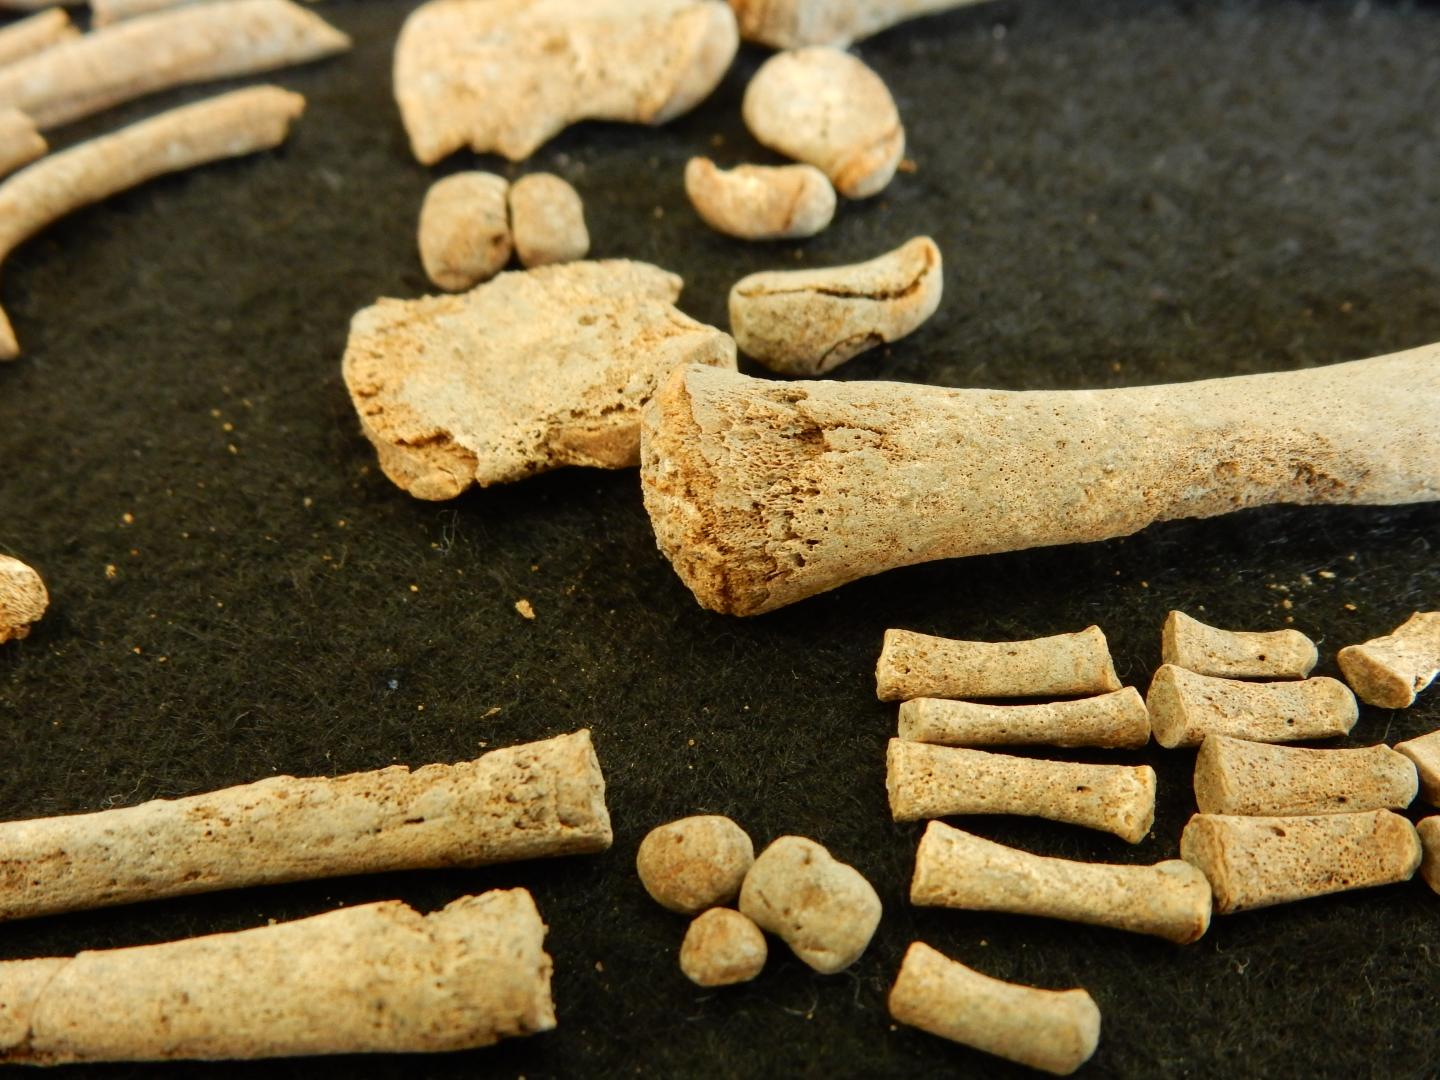 These are skeletal remains from individual 94A, who was infected with syphilis and was 6 months old at the time of death. The skeleton displays characteristic signs of a treponemal disease. [Rodrigo Barquera. Santa Isabel collection, Lab. of Osteology, ENAH, Mexico (permission No. 401.15.3-2017/1065 INAH).]